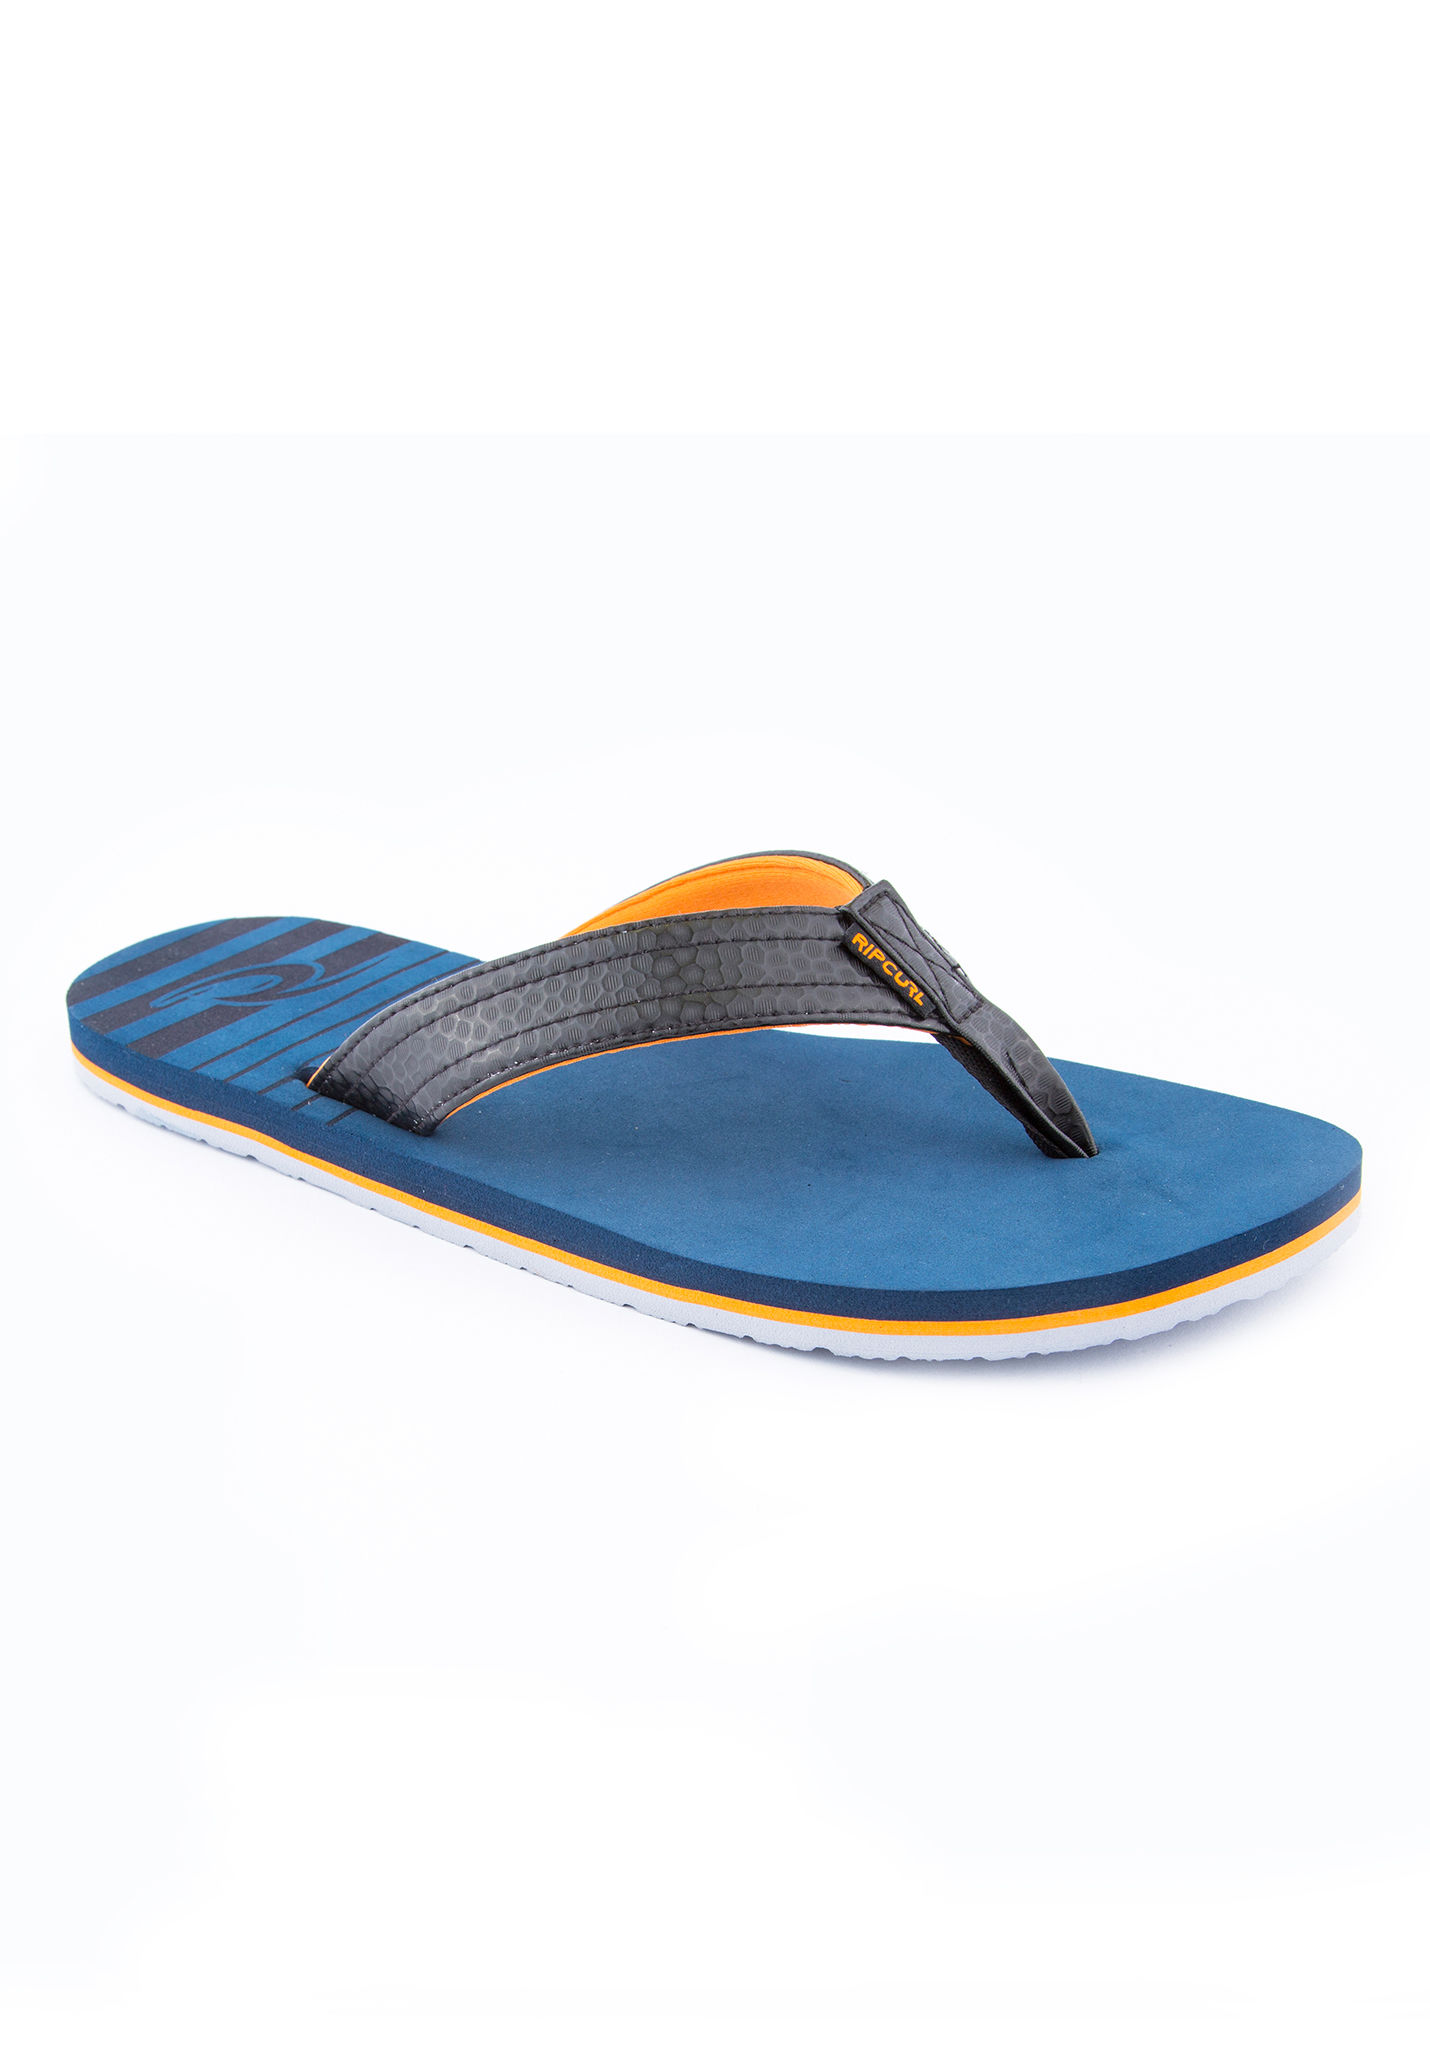 c150c9079f0927 Rip Curl The Groove - Sandals for Men - Blue - Planet Sports